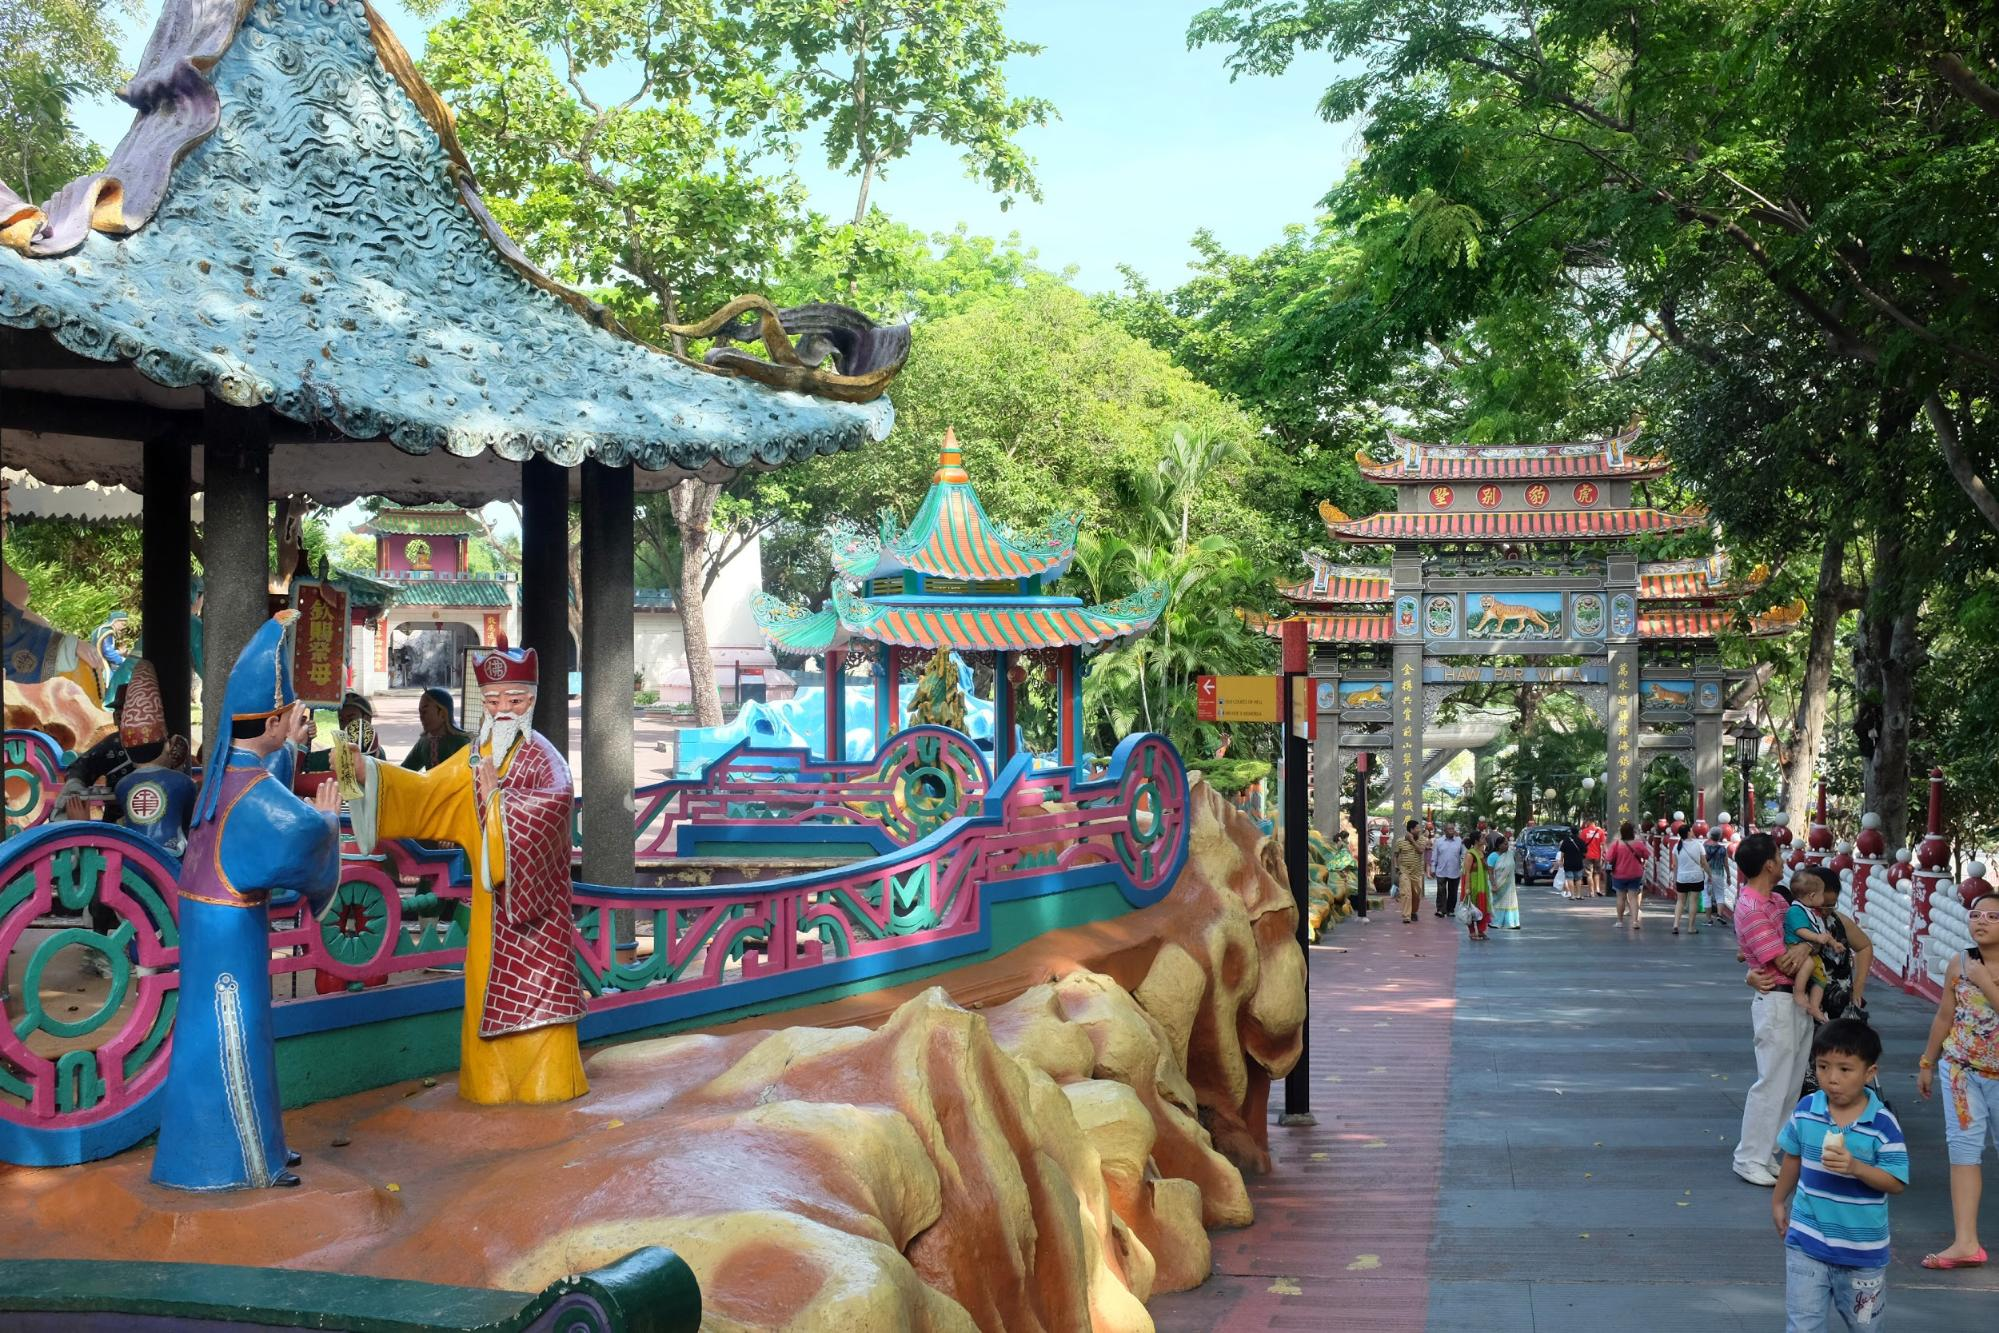 10 Underrated Attractions In Singapore To Check Out On Your Next Trip